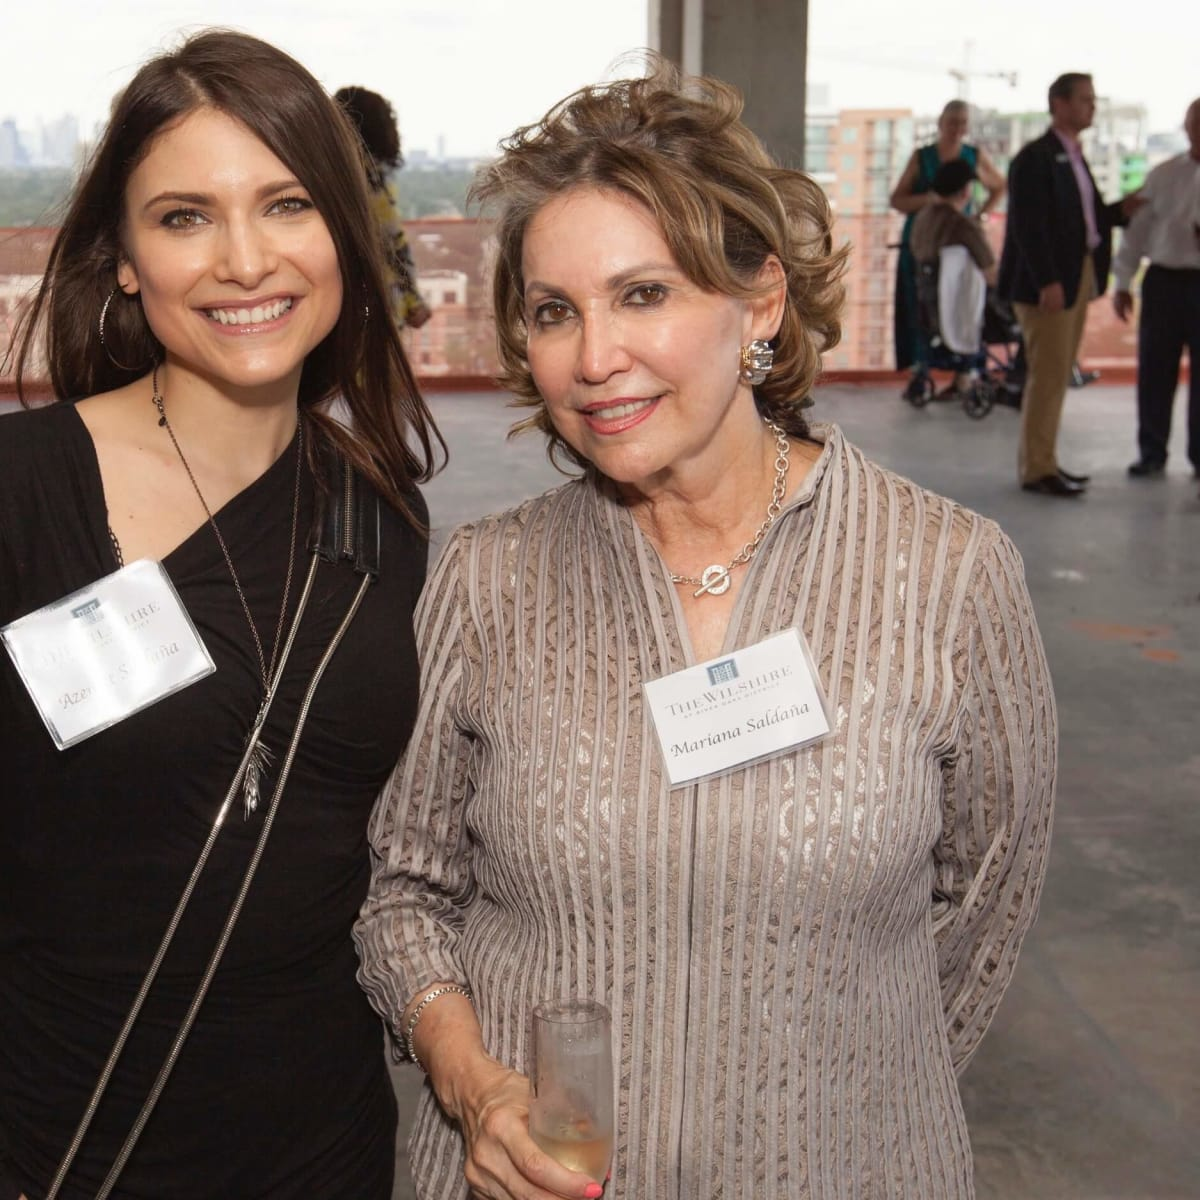 Wilshire Topping Out, July 2016, Azenett Saldana, Mariana Saldana